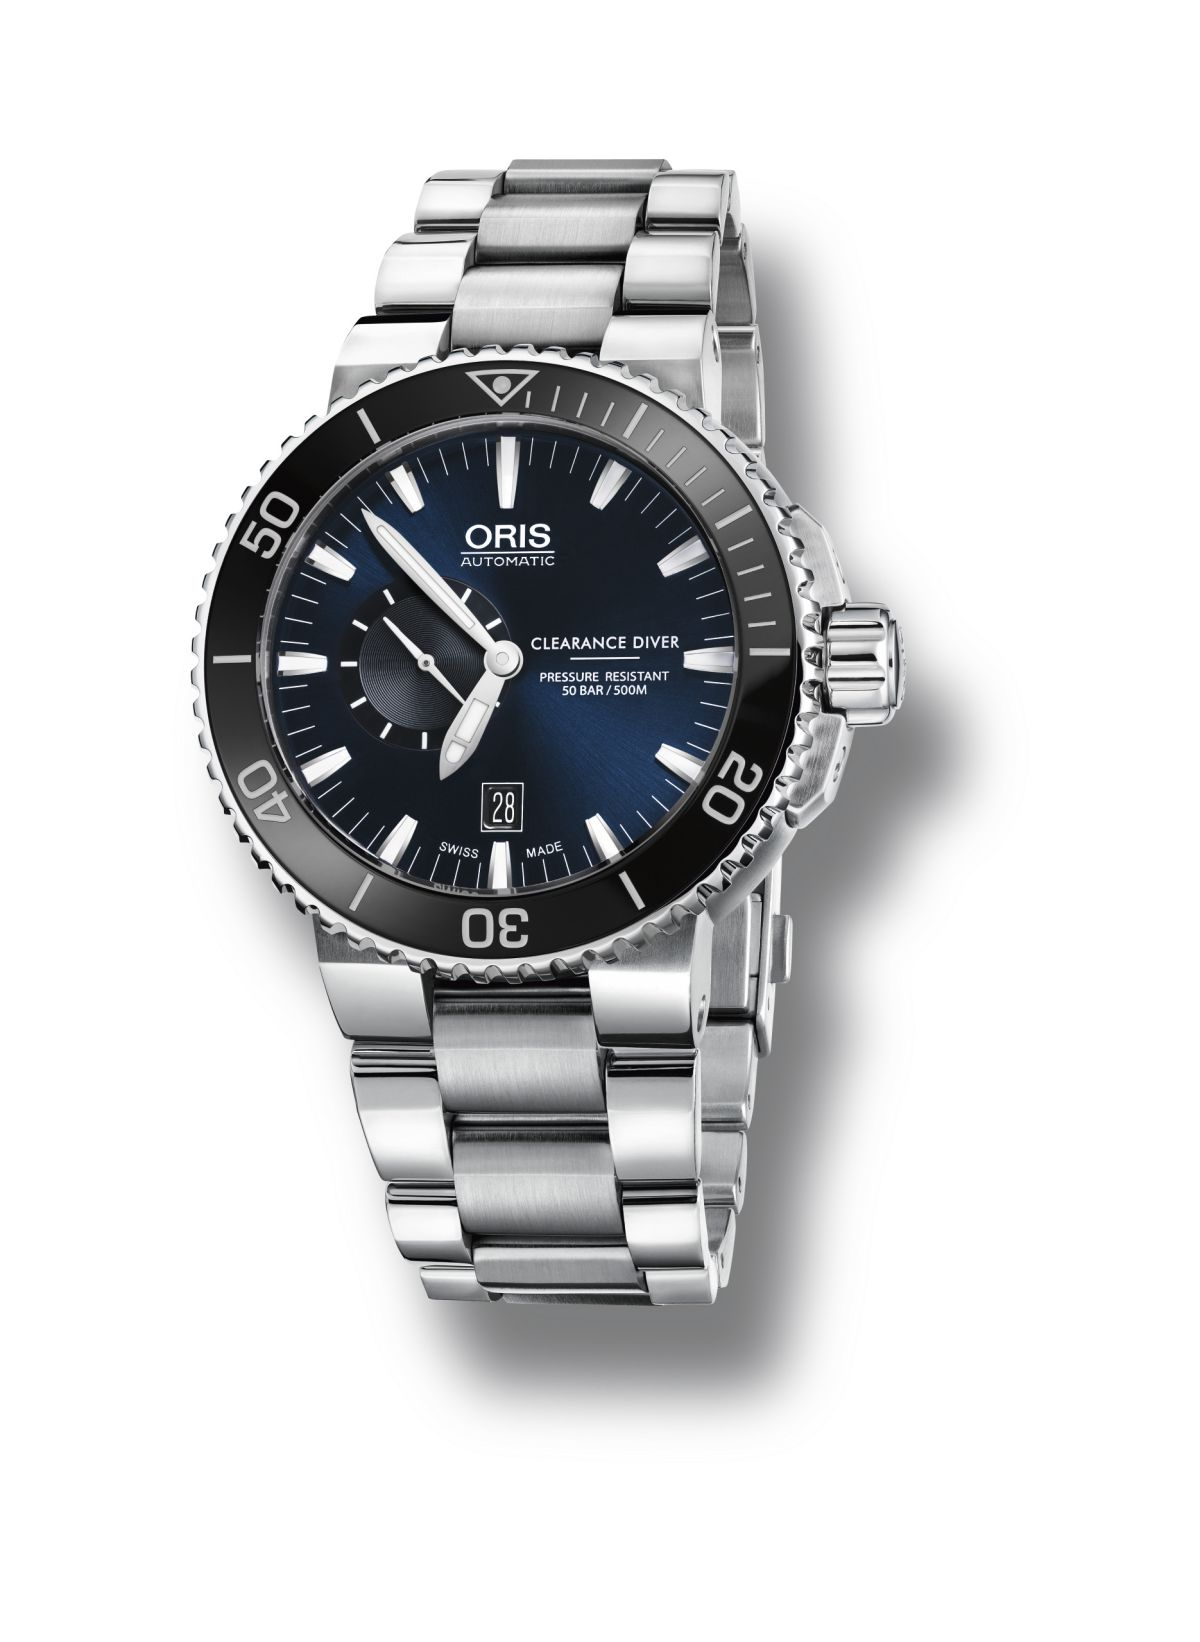 Oris-Royal-Navy-Clearance-Diver-Limited-Edition-2.jpg